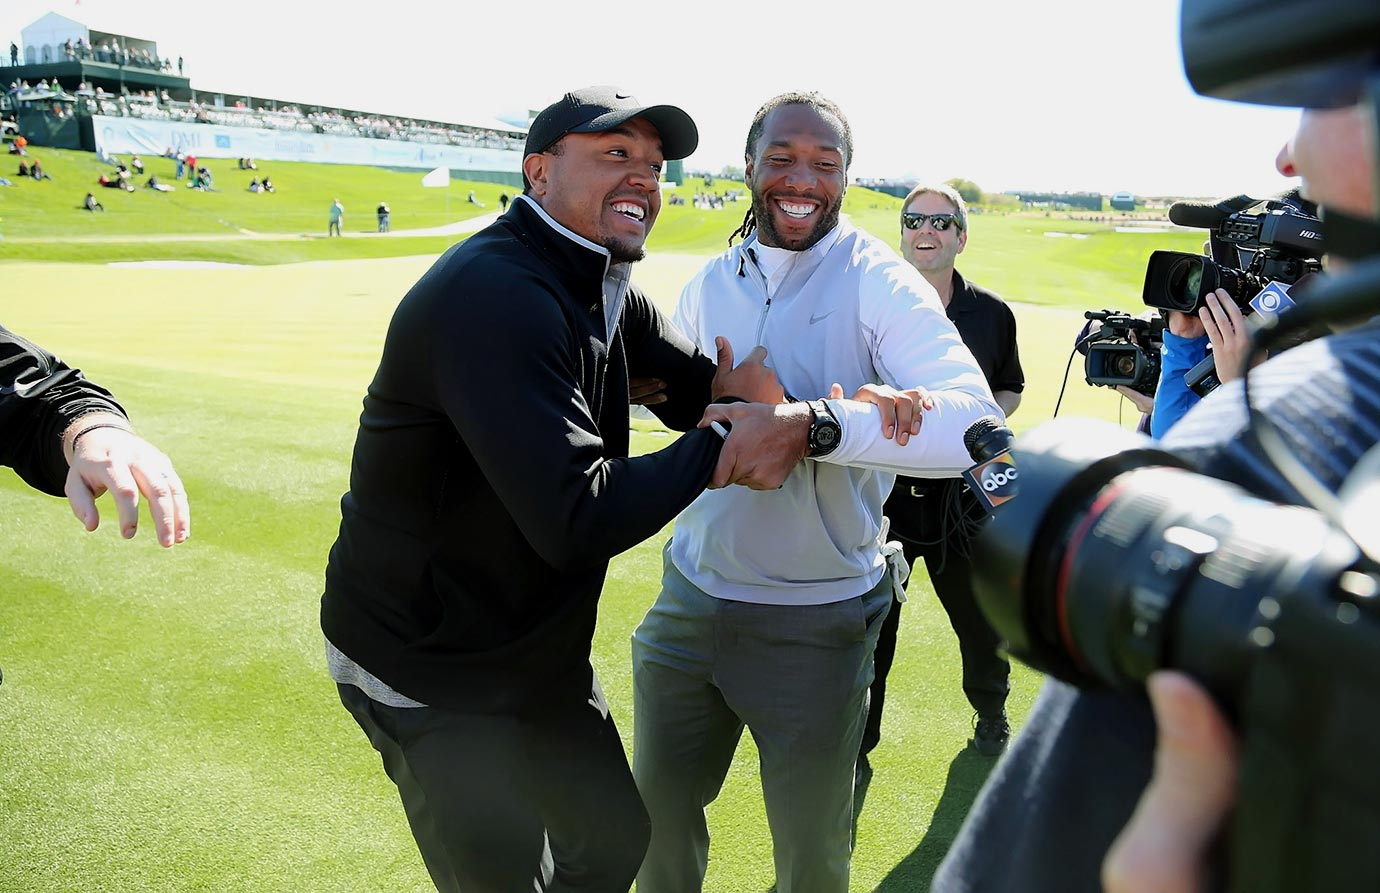 Larry Fitzgerald grabs a reluctant teammate and spectator Michael Floyd to be interviewed after Fitzgerald finished up his round of Pro Am golf in Scottsdale, Ariz.